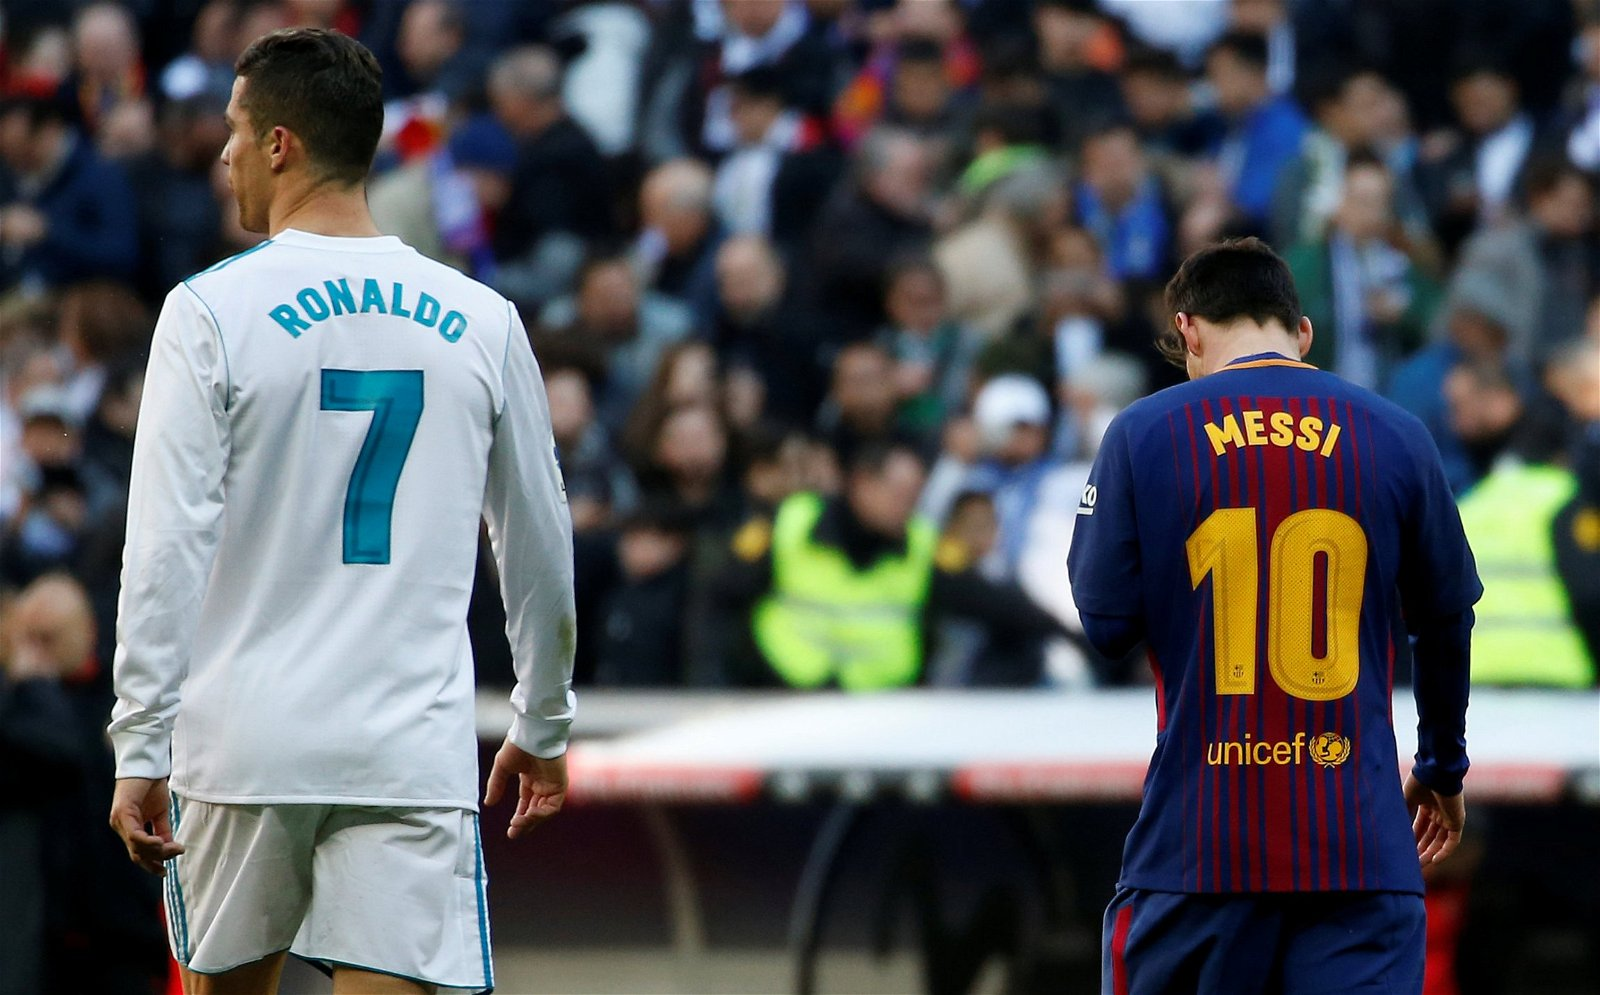 Cristiano Ronaldo and Lionel Messi side by side